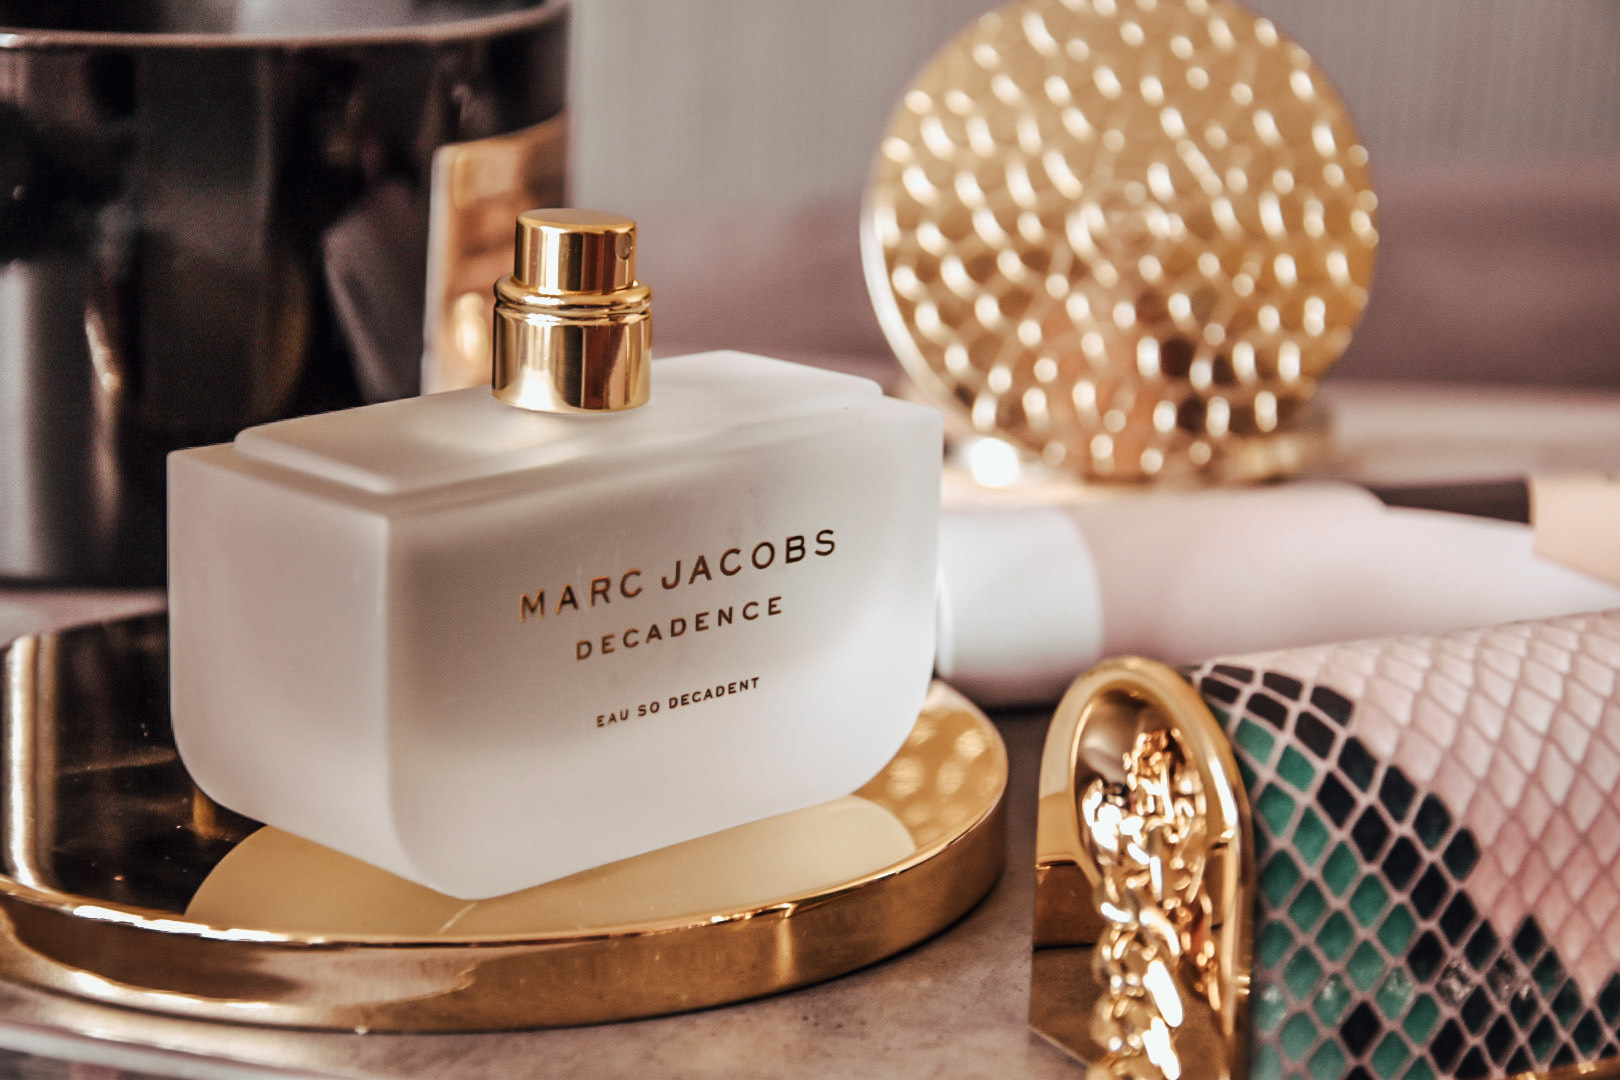 Marc Jacobs Eau So Decadent notino